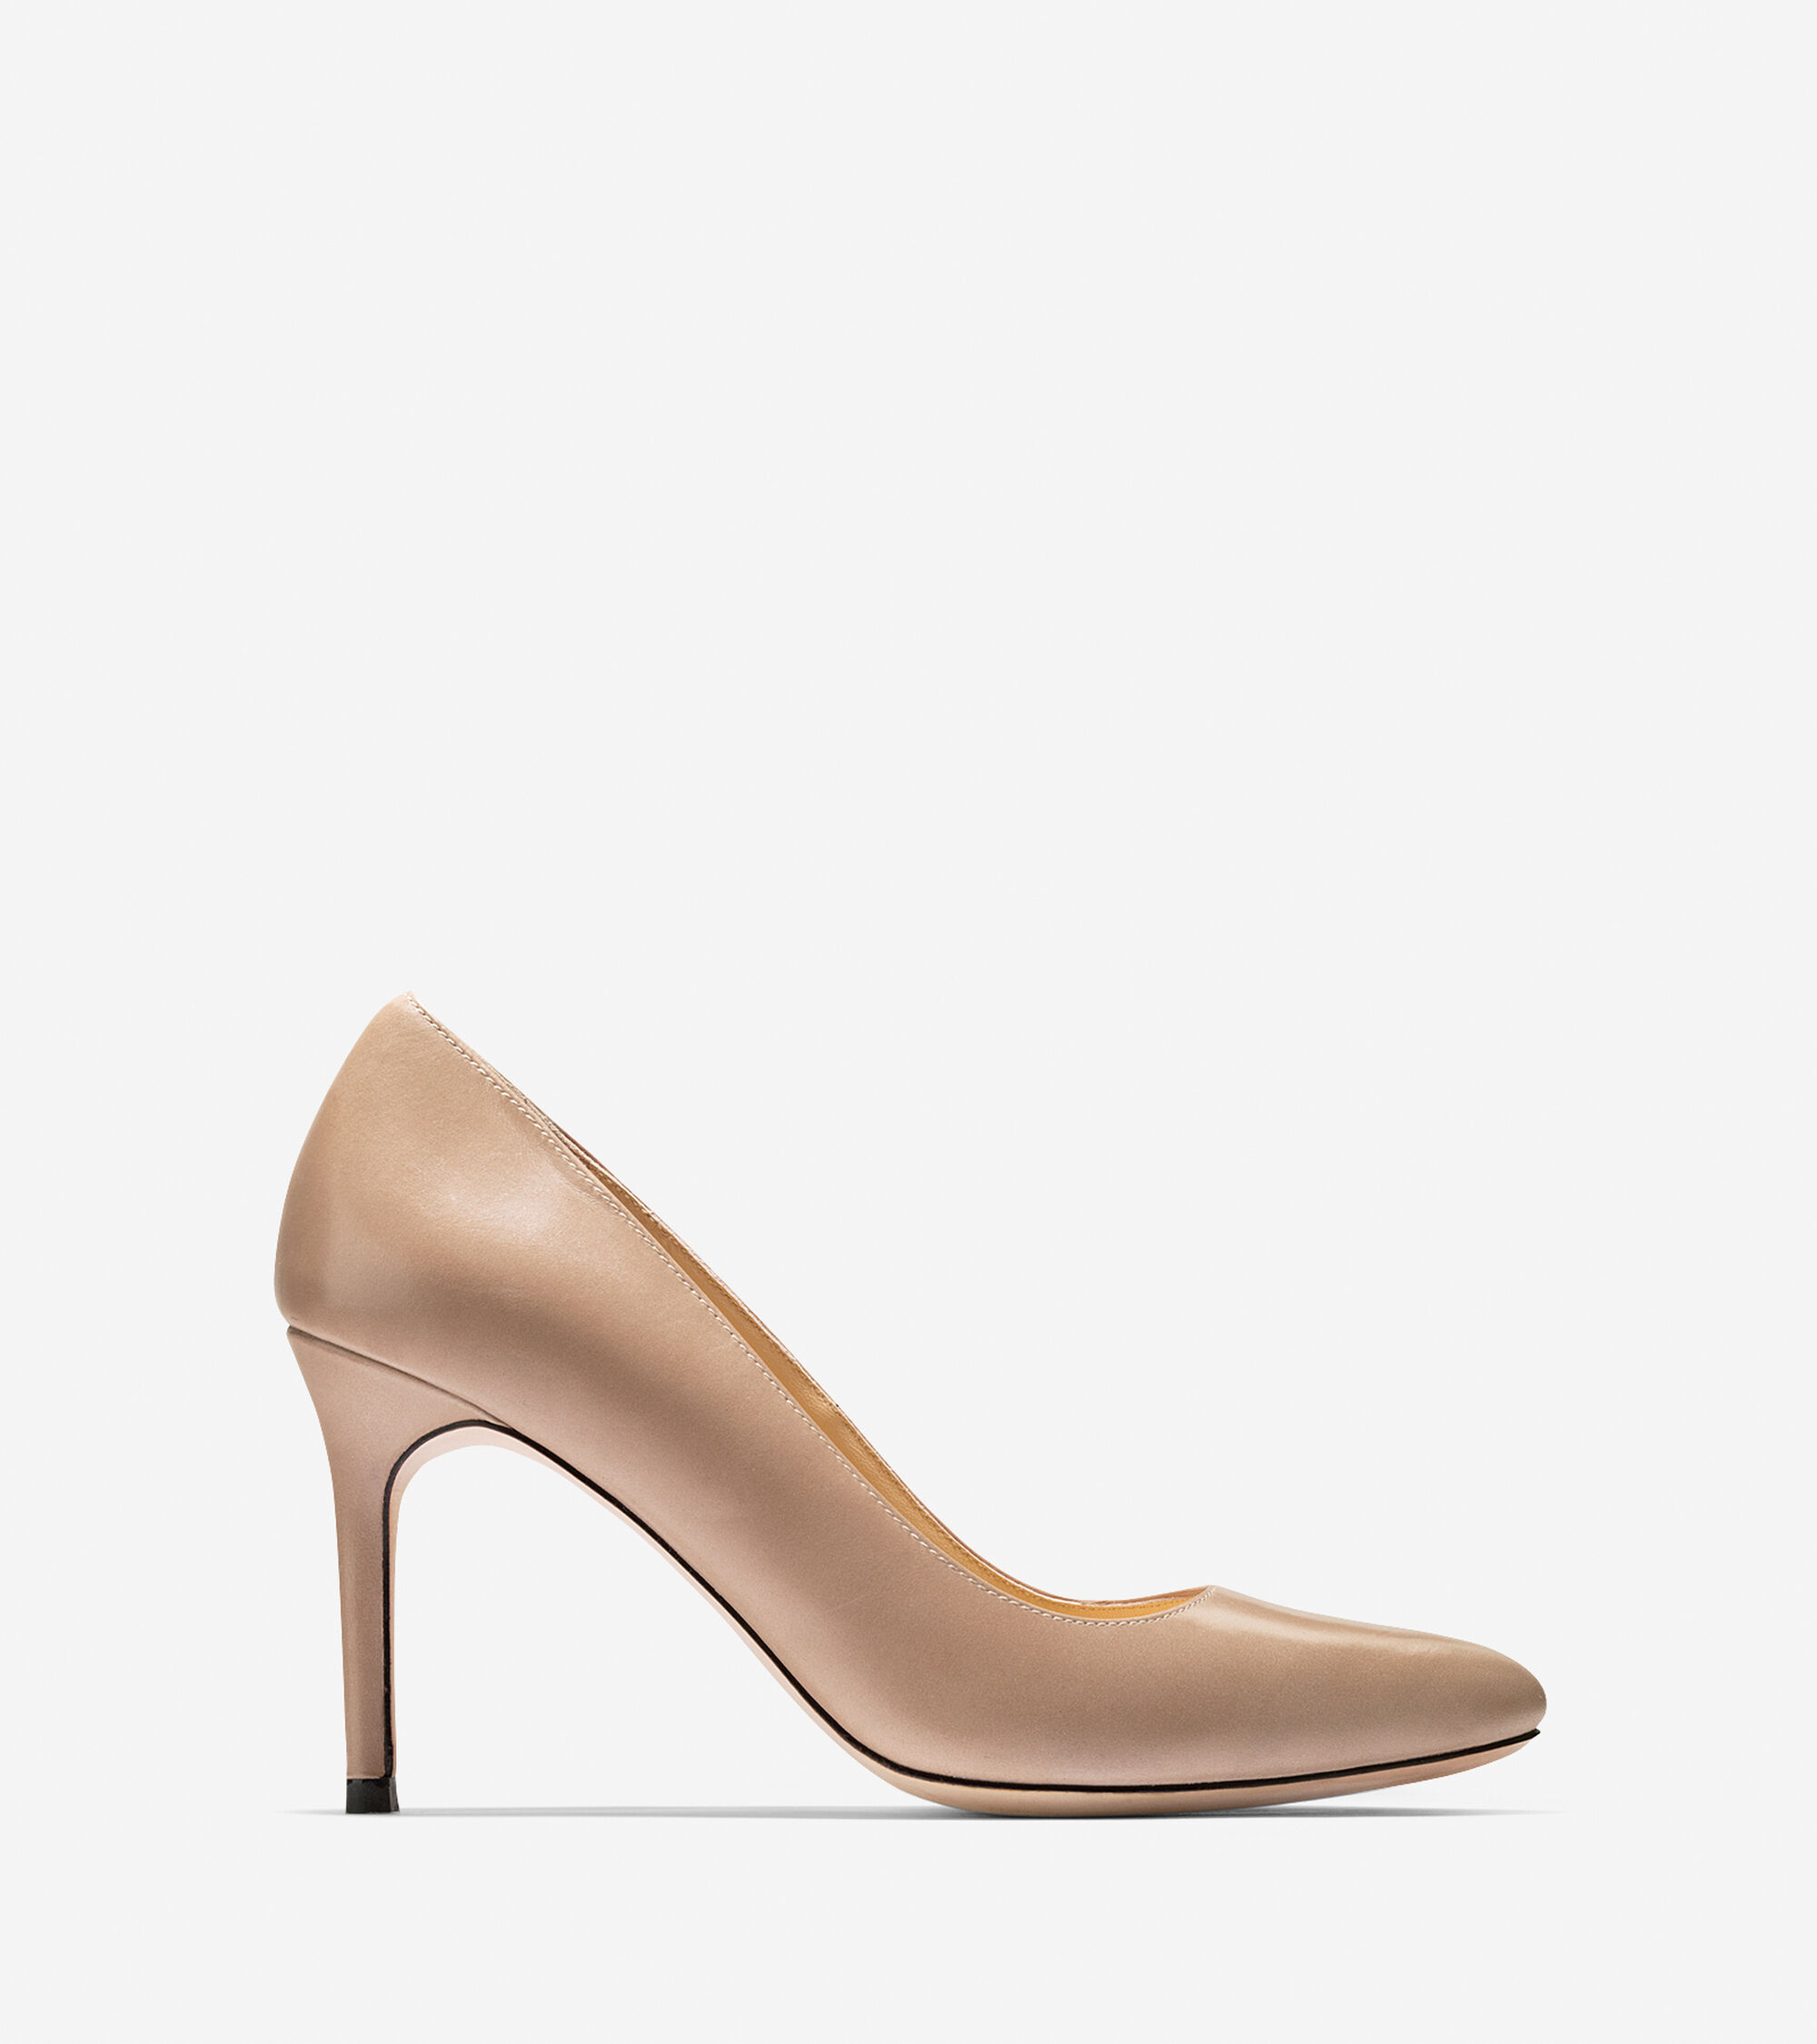 Pumps > Bethany Pump (85mm) - Almond Toe